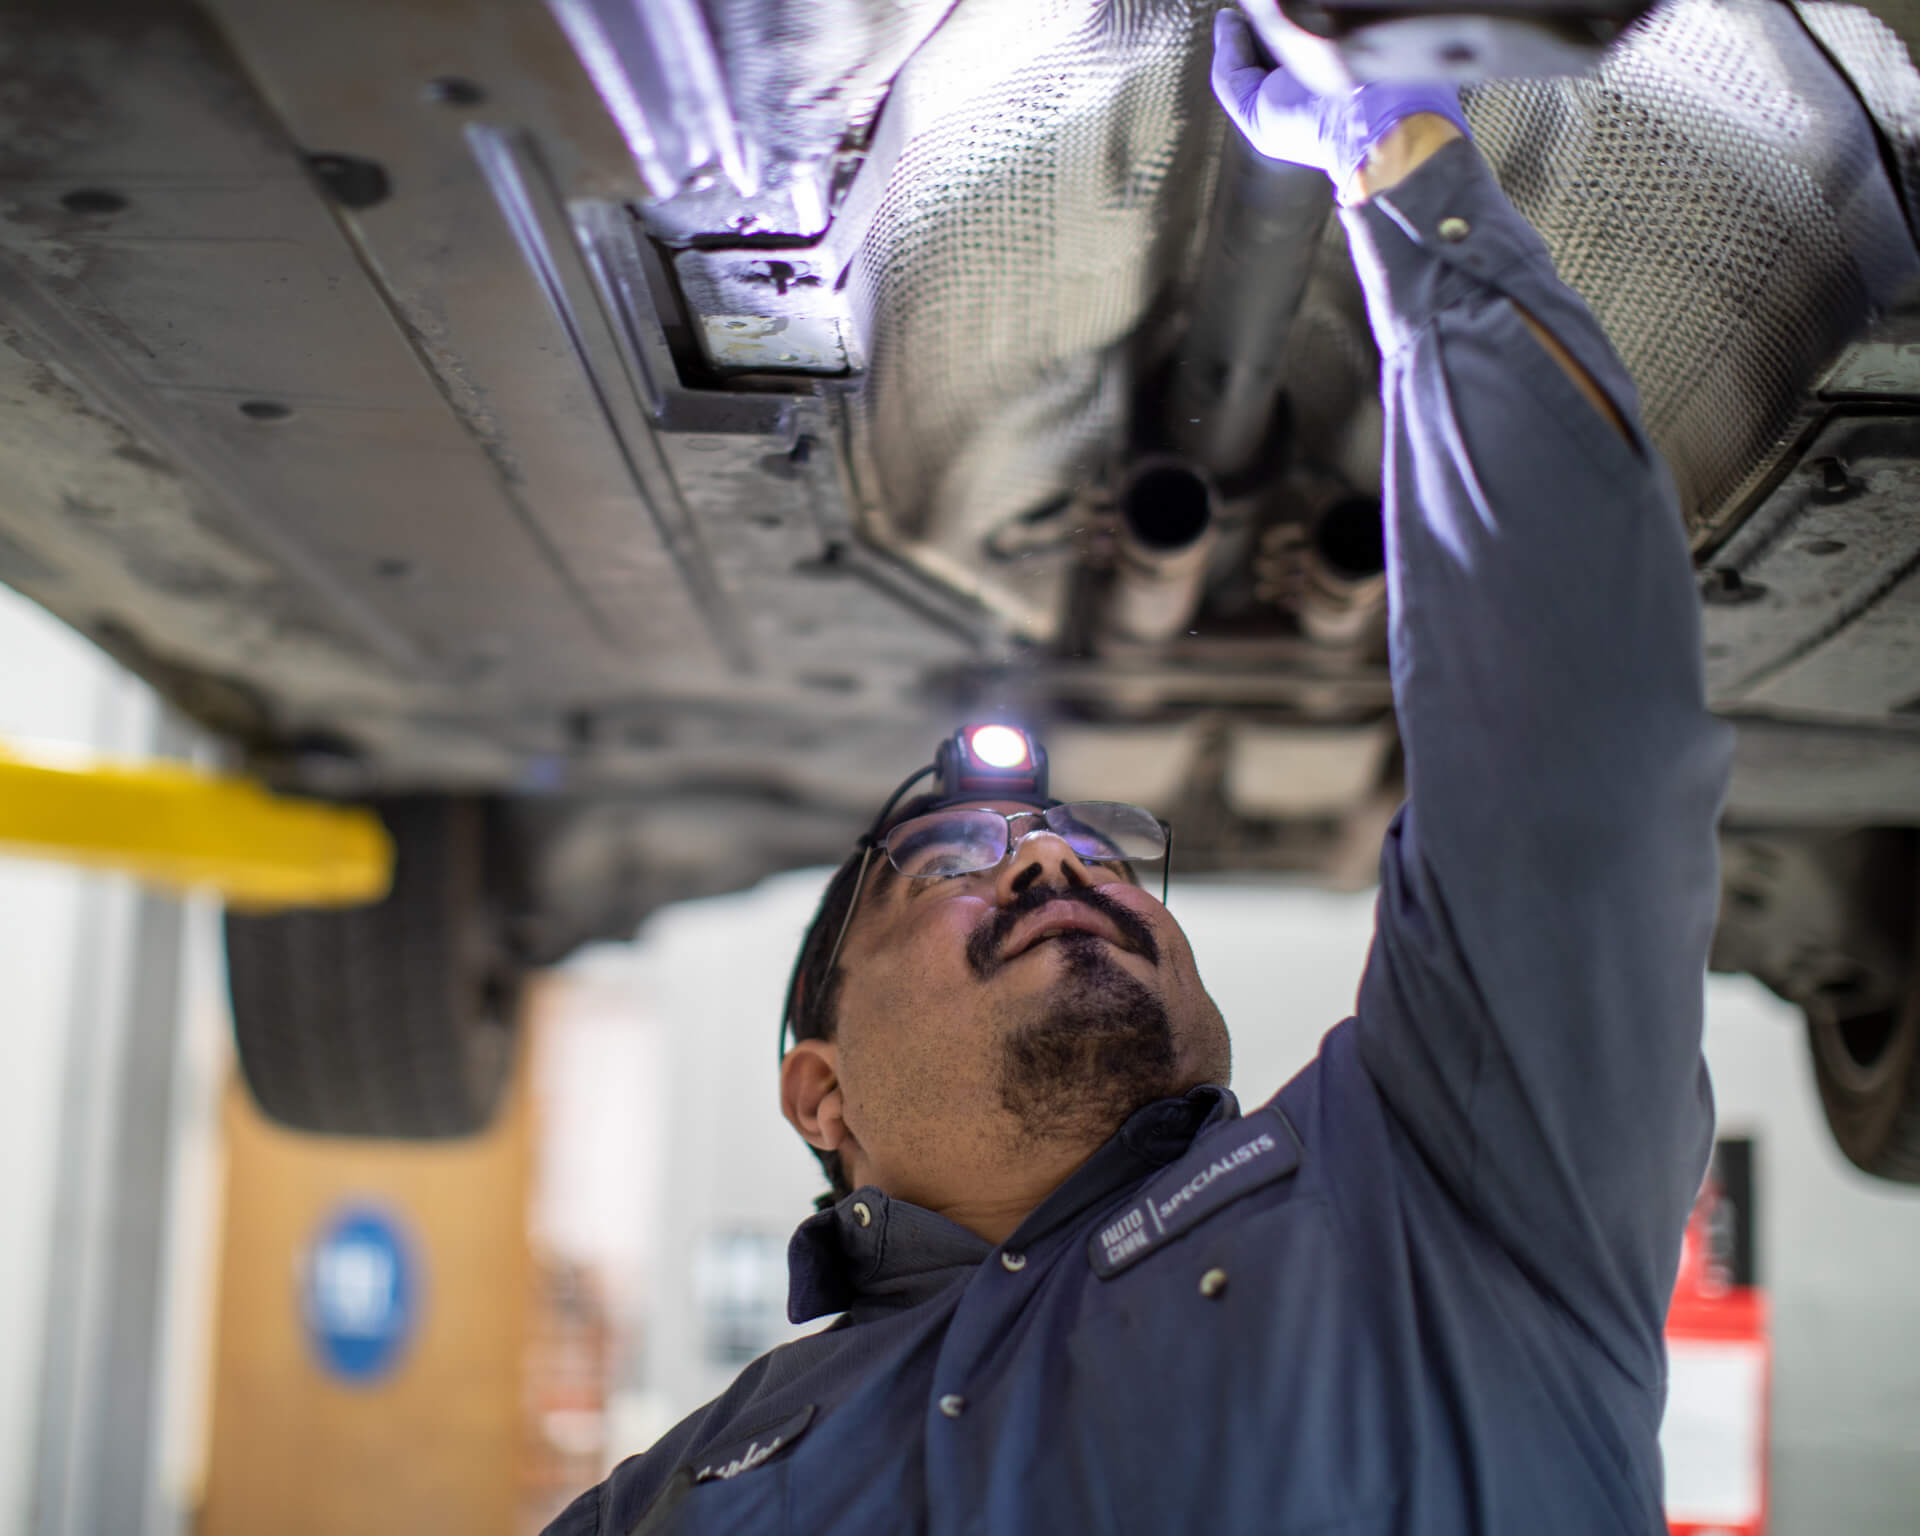 Auto Care Specialists - 20190613 - 68.jpg